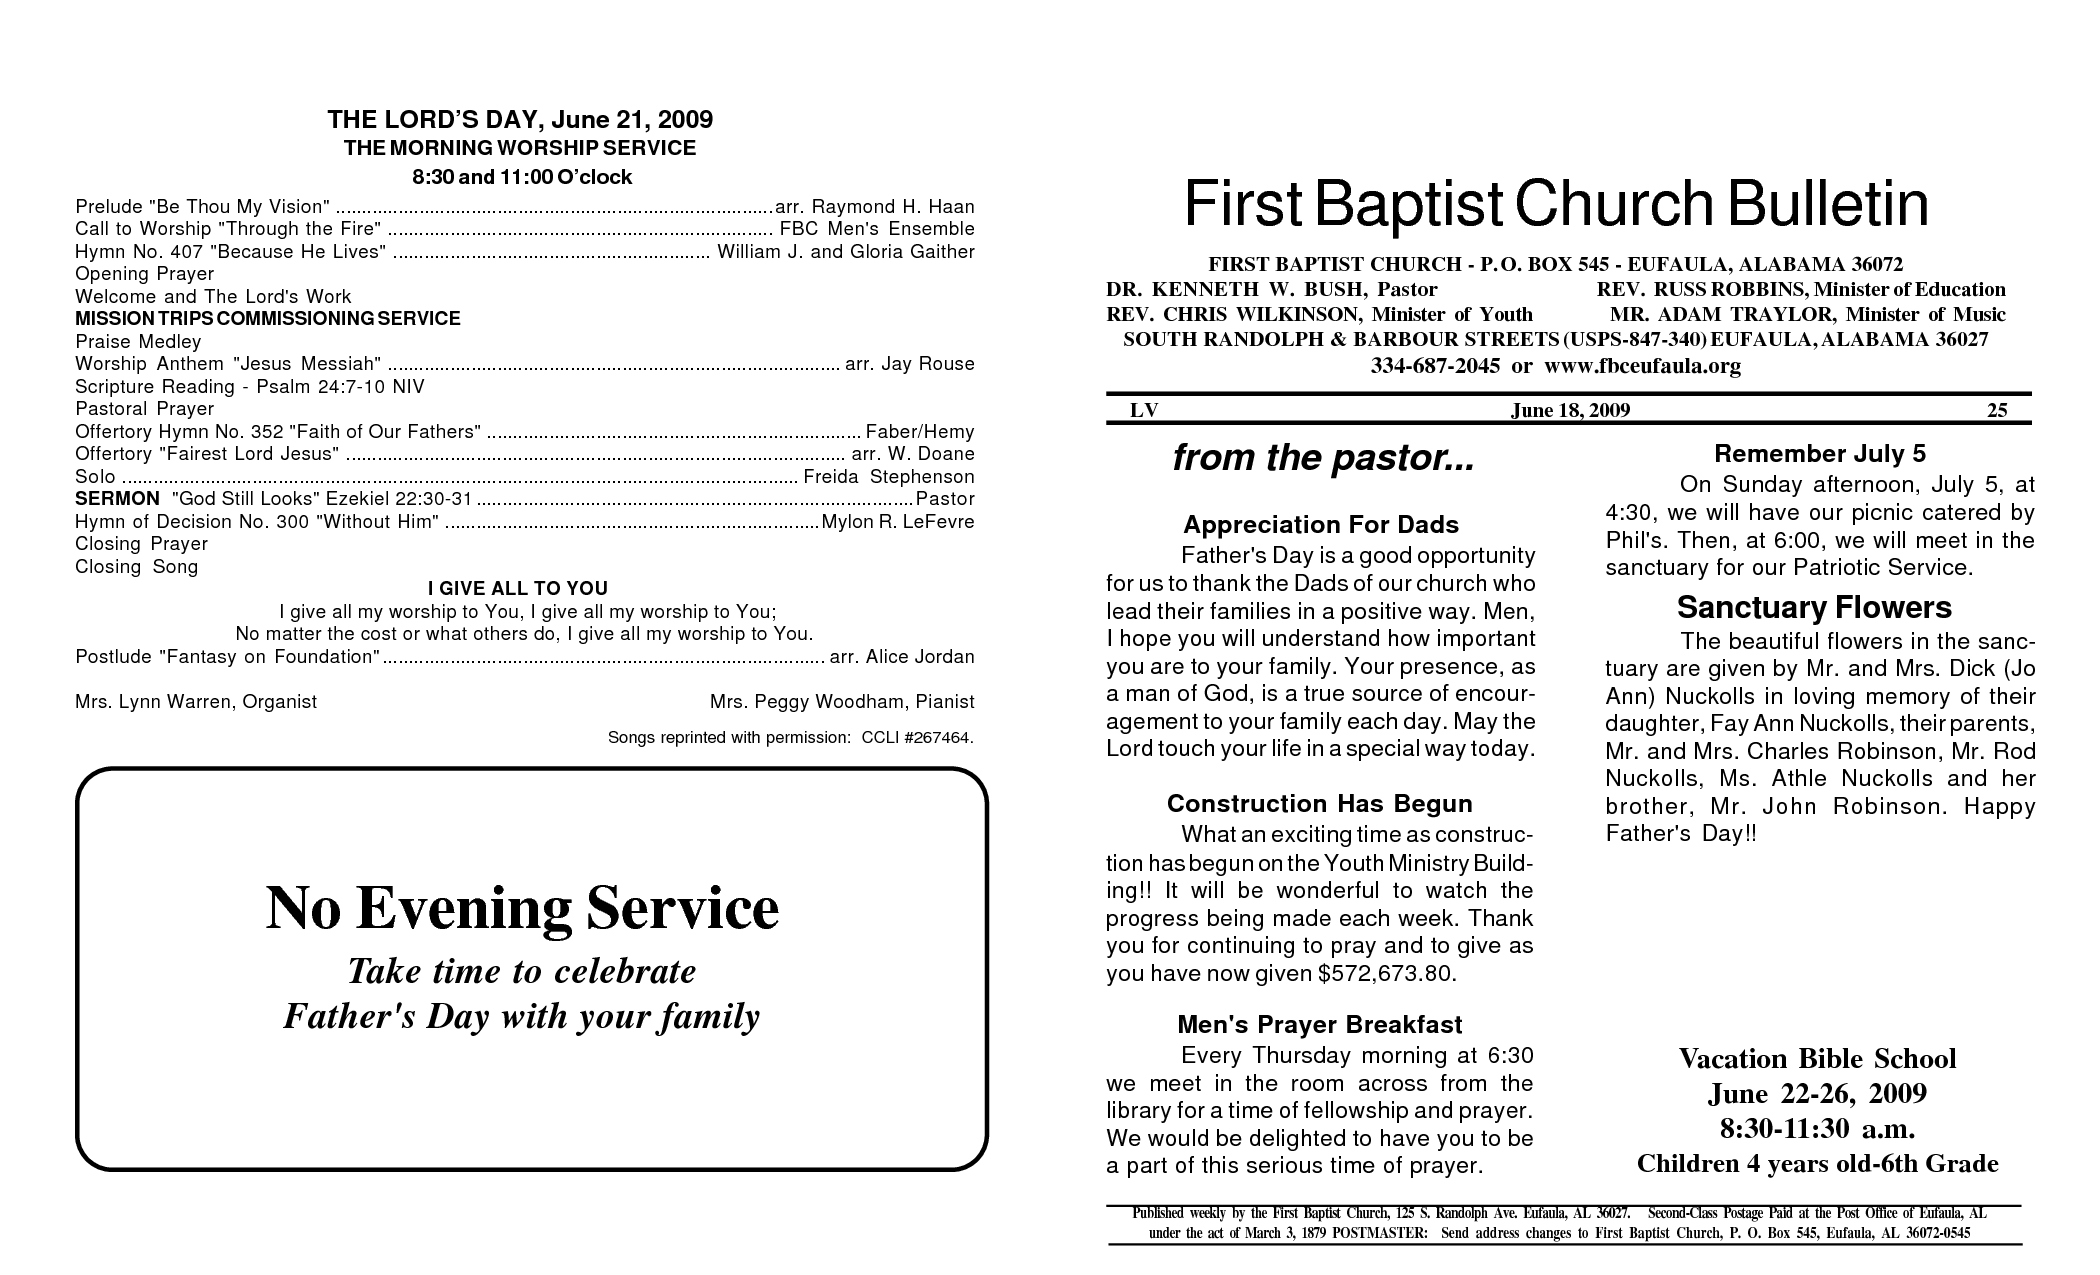 memorial service programs sample first baptist church bulletin no